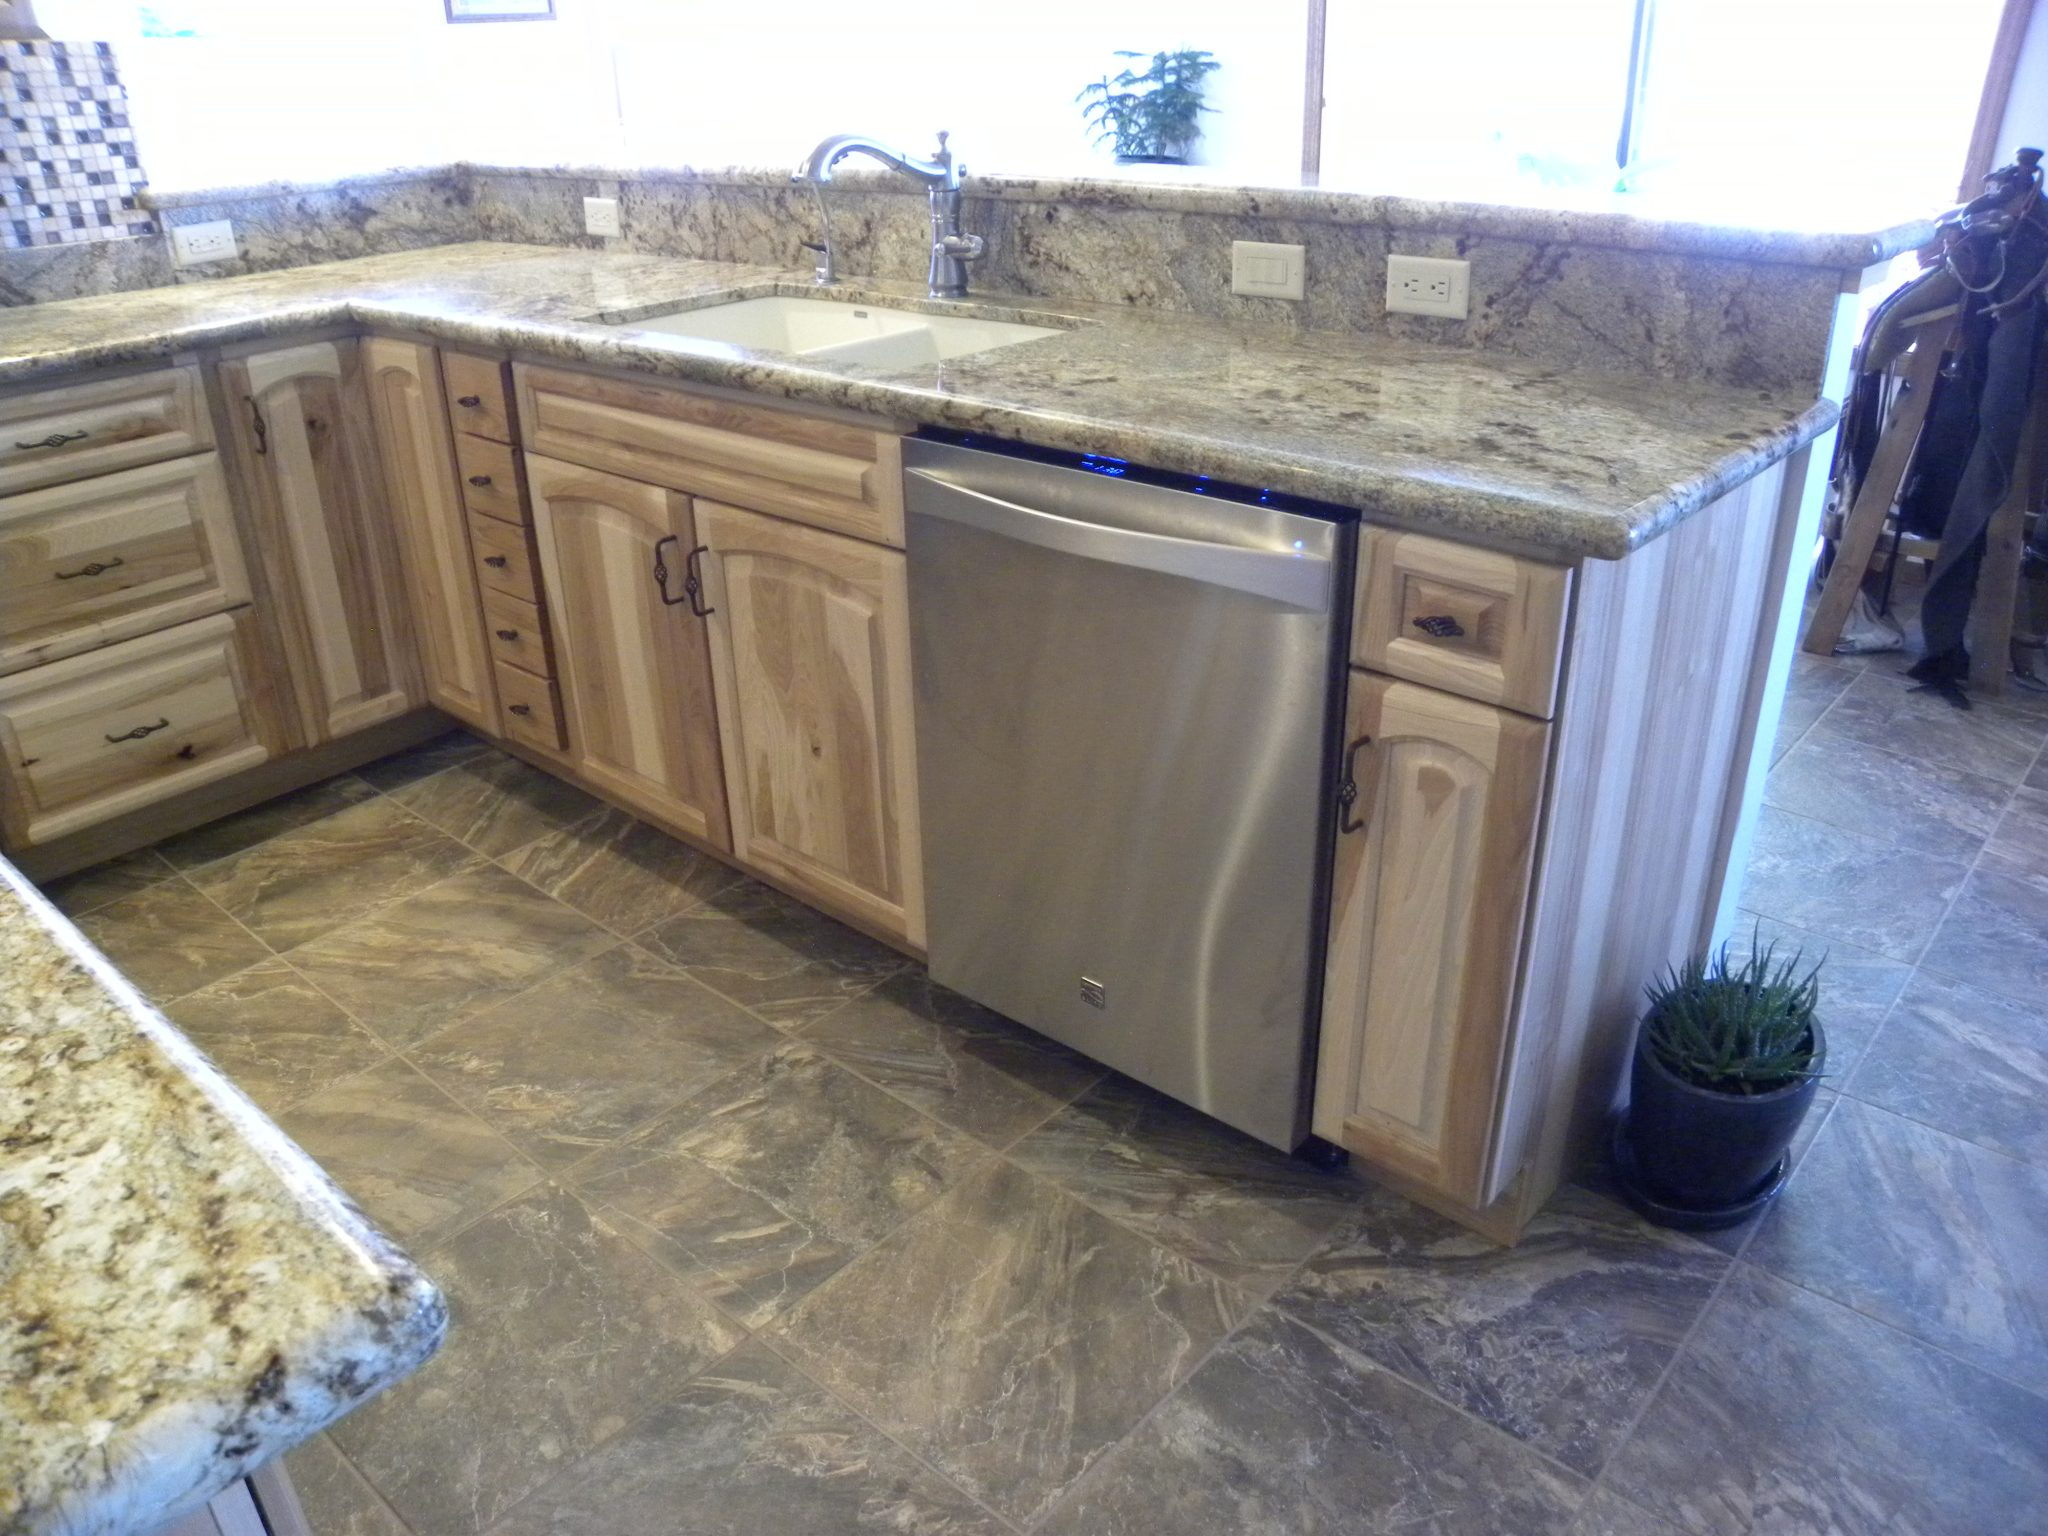 Interior shot of a newly remodeled residential home with granite countertops and custom wooden cabinets